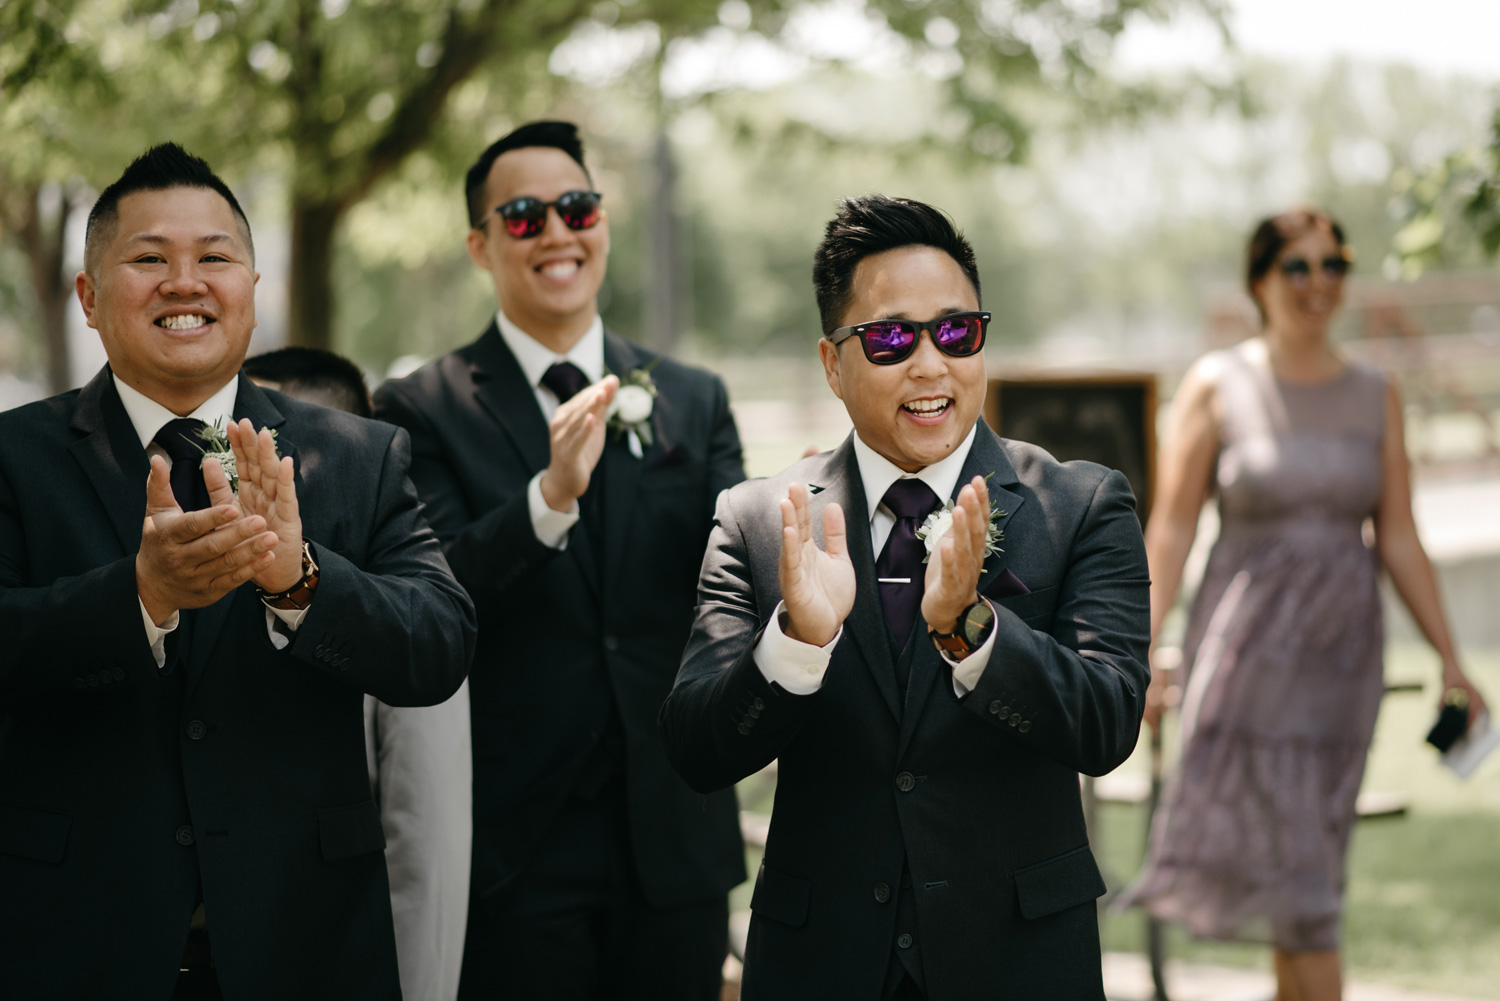 Groomsmen clapping with sunglasses on